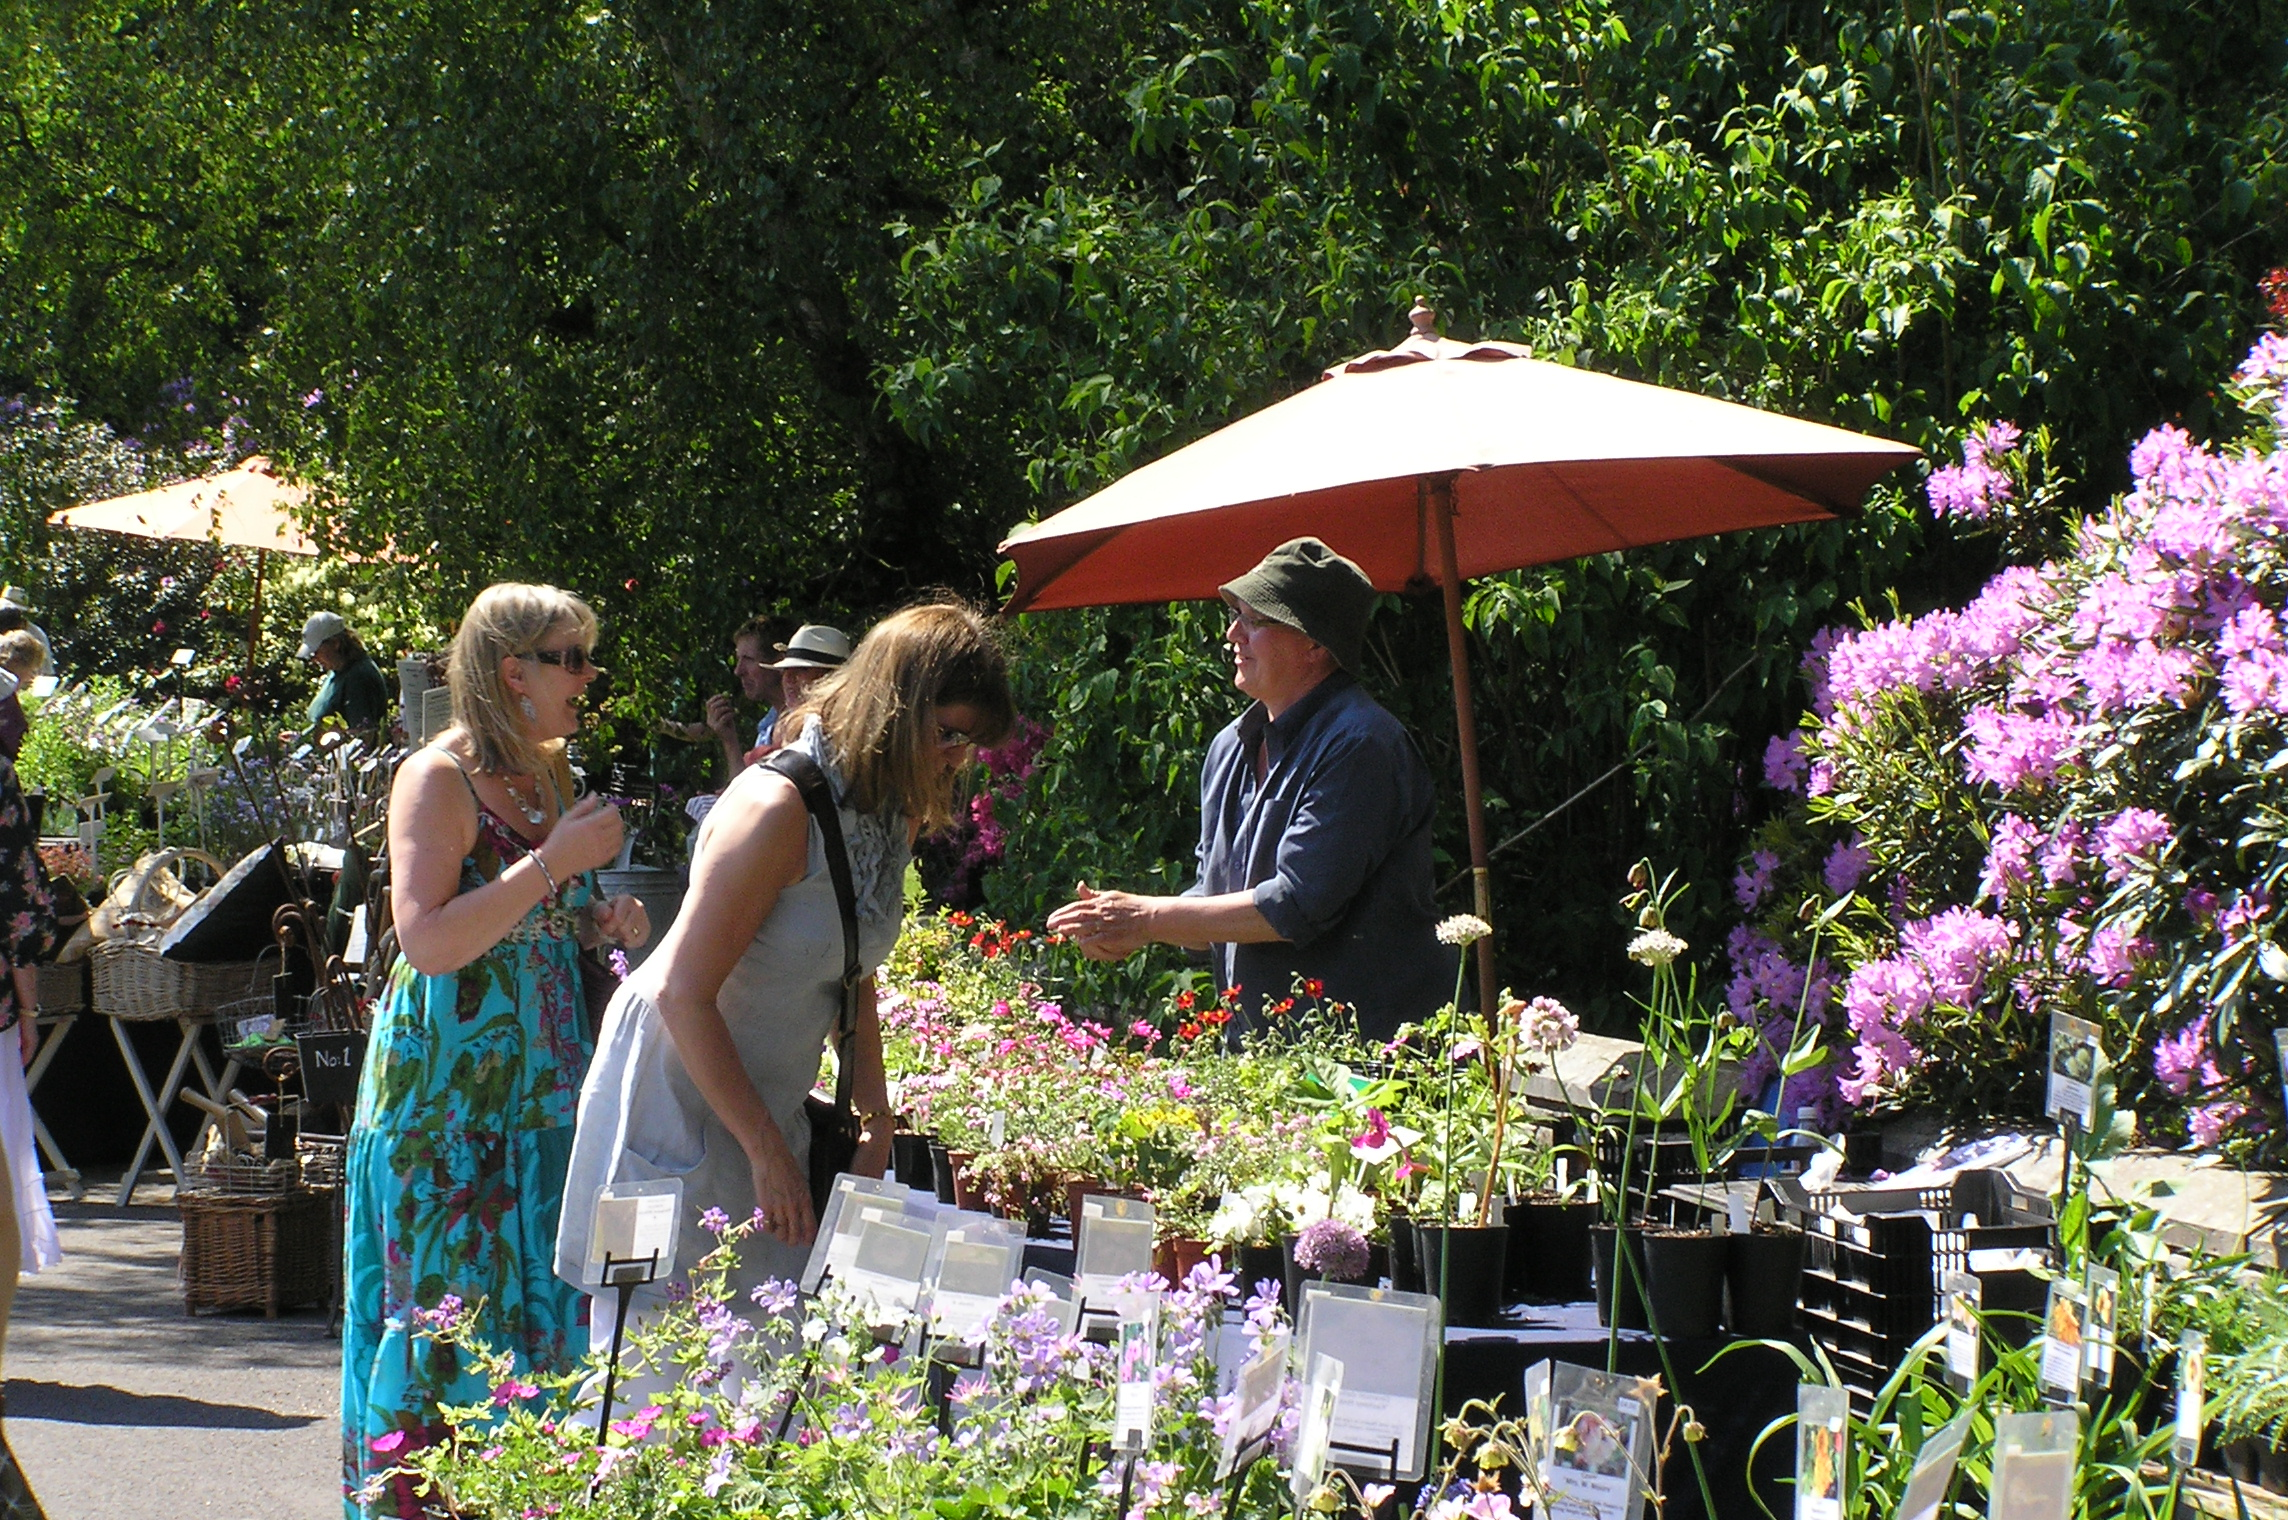 Specialist Plant Fair at Hoghton Tower